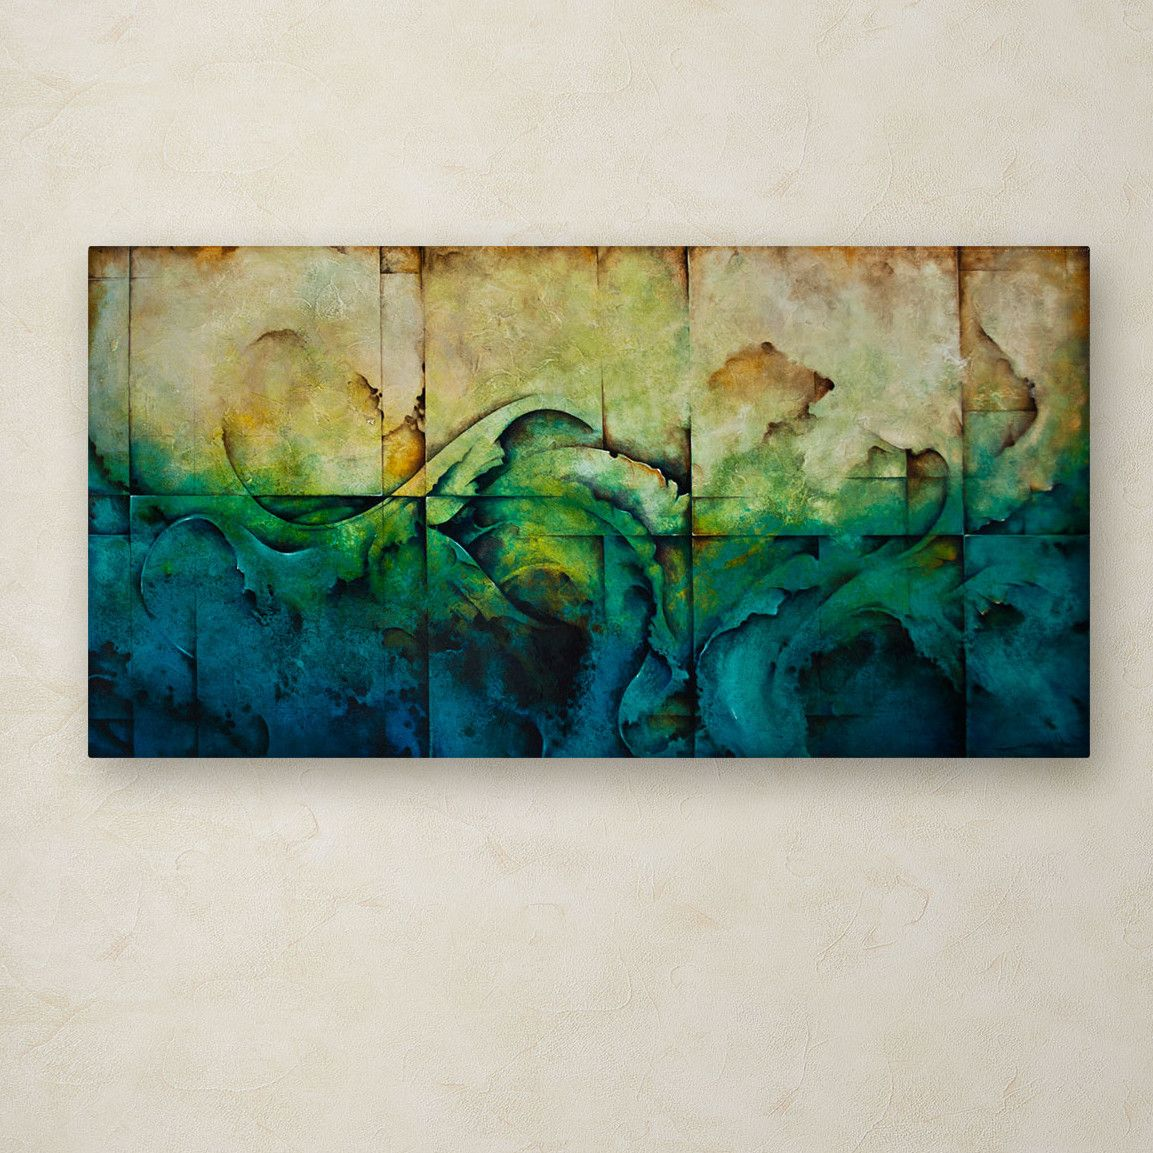 Trademark Fine Art 'Paradise' by Cody Hooper Painting Print on Wrapped Canvas